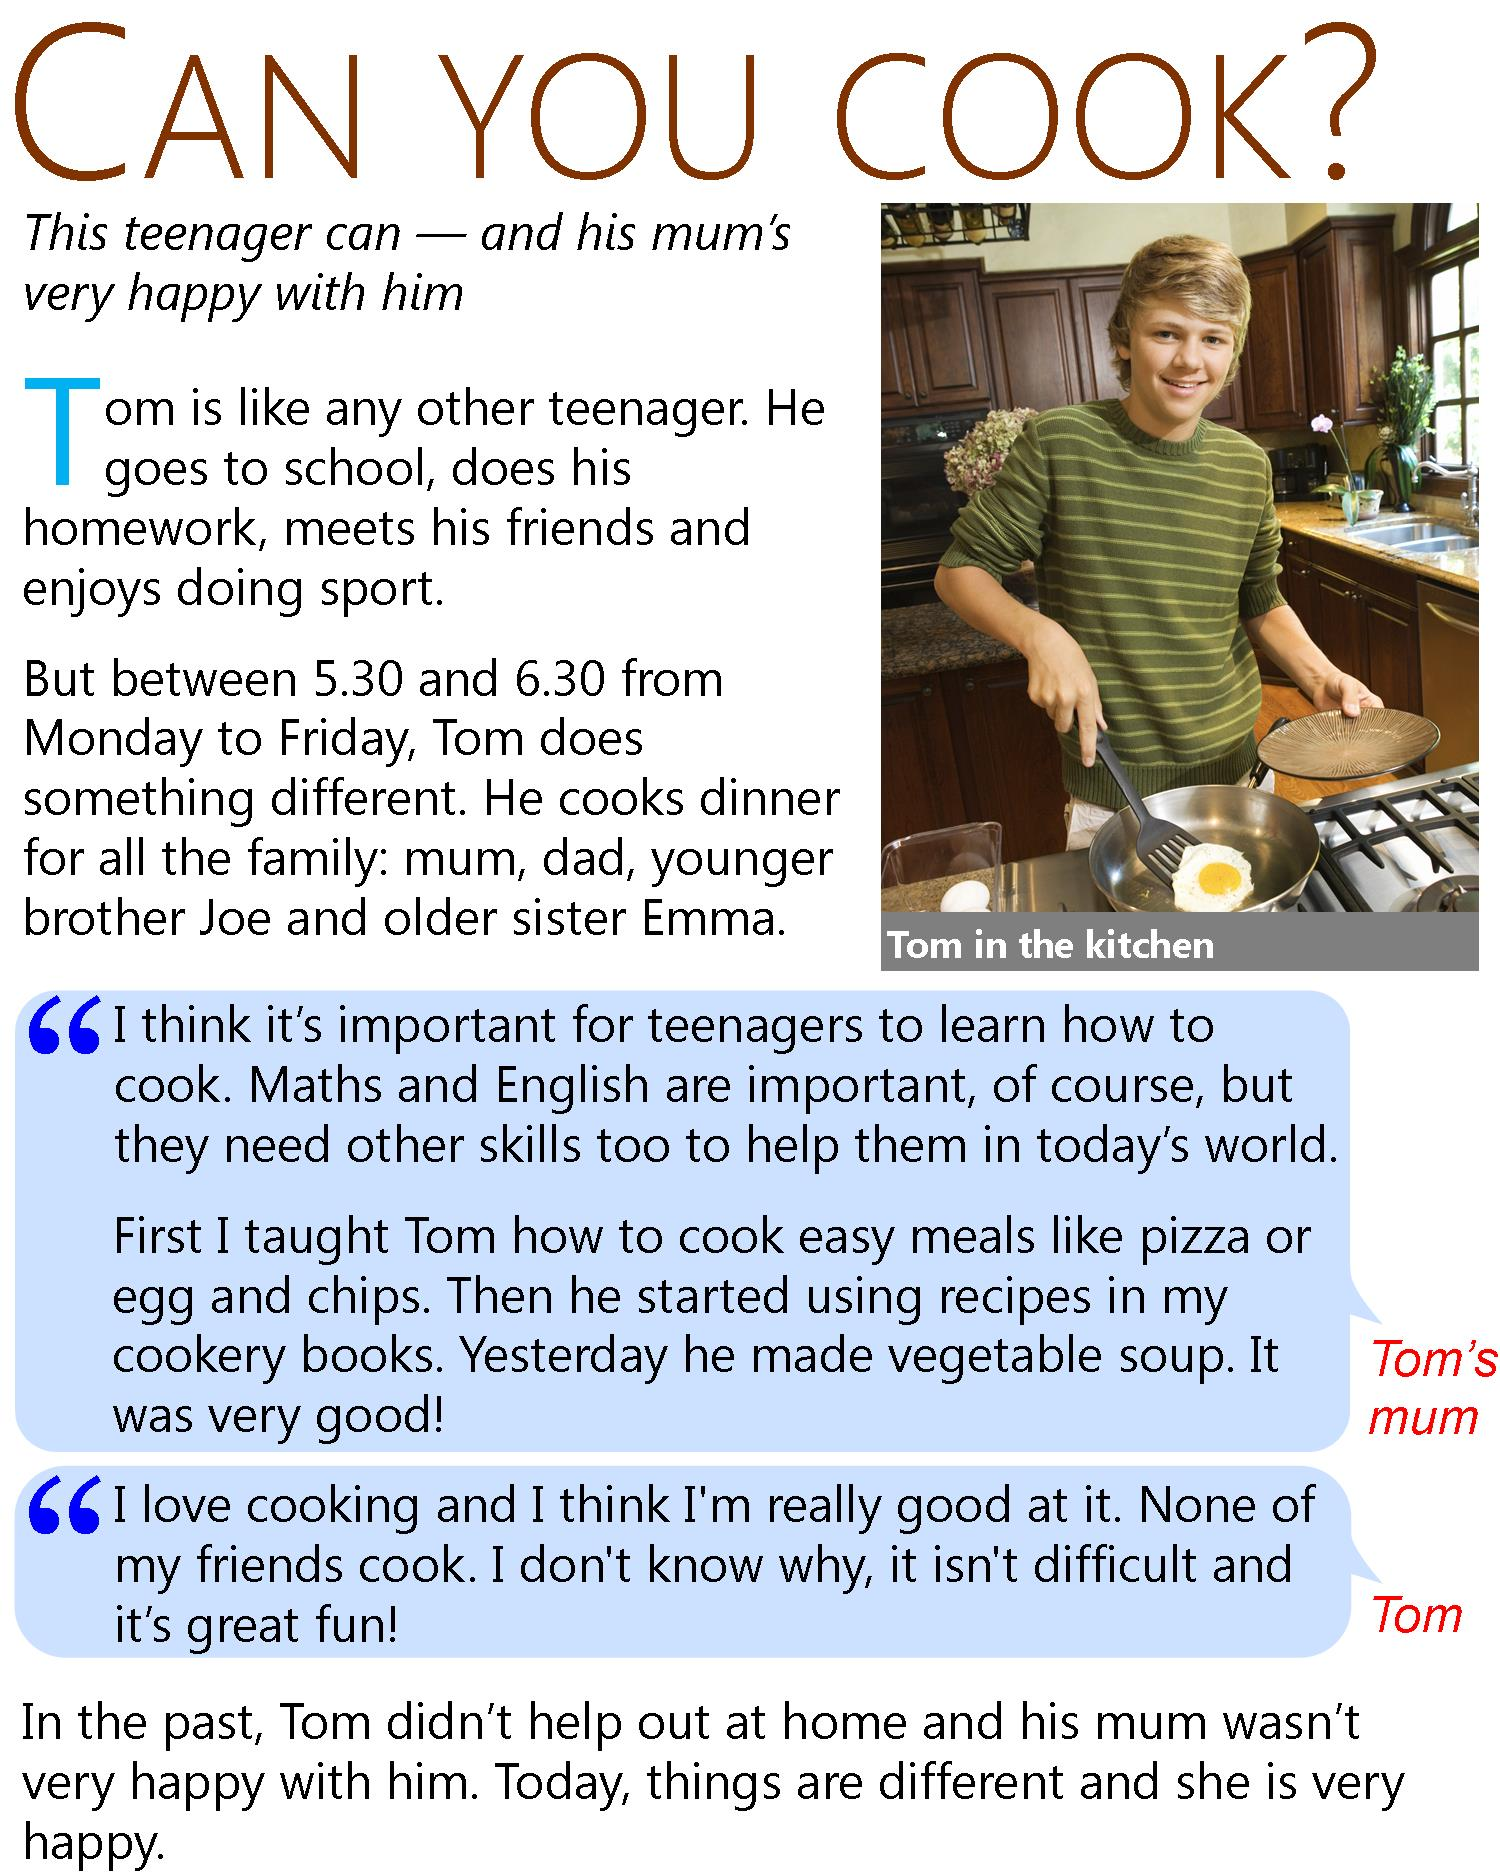 Can You Cook Learnenglish Teens British Council